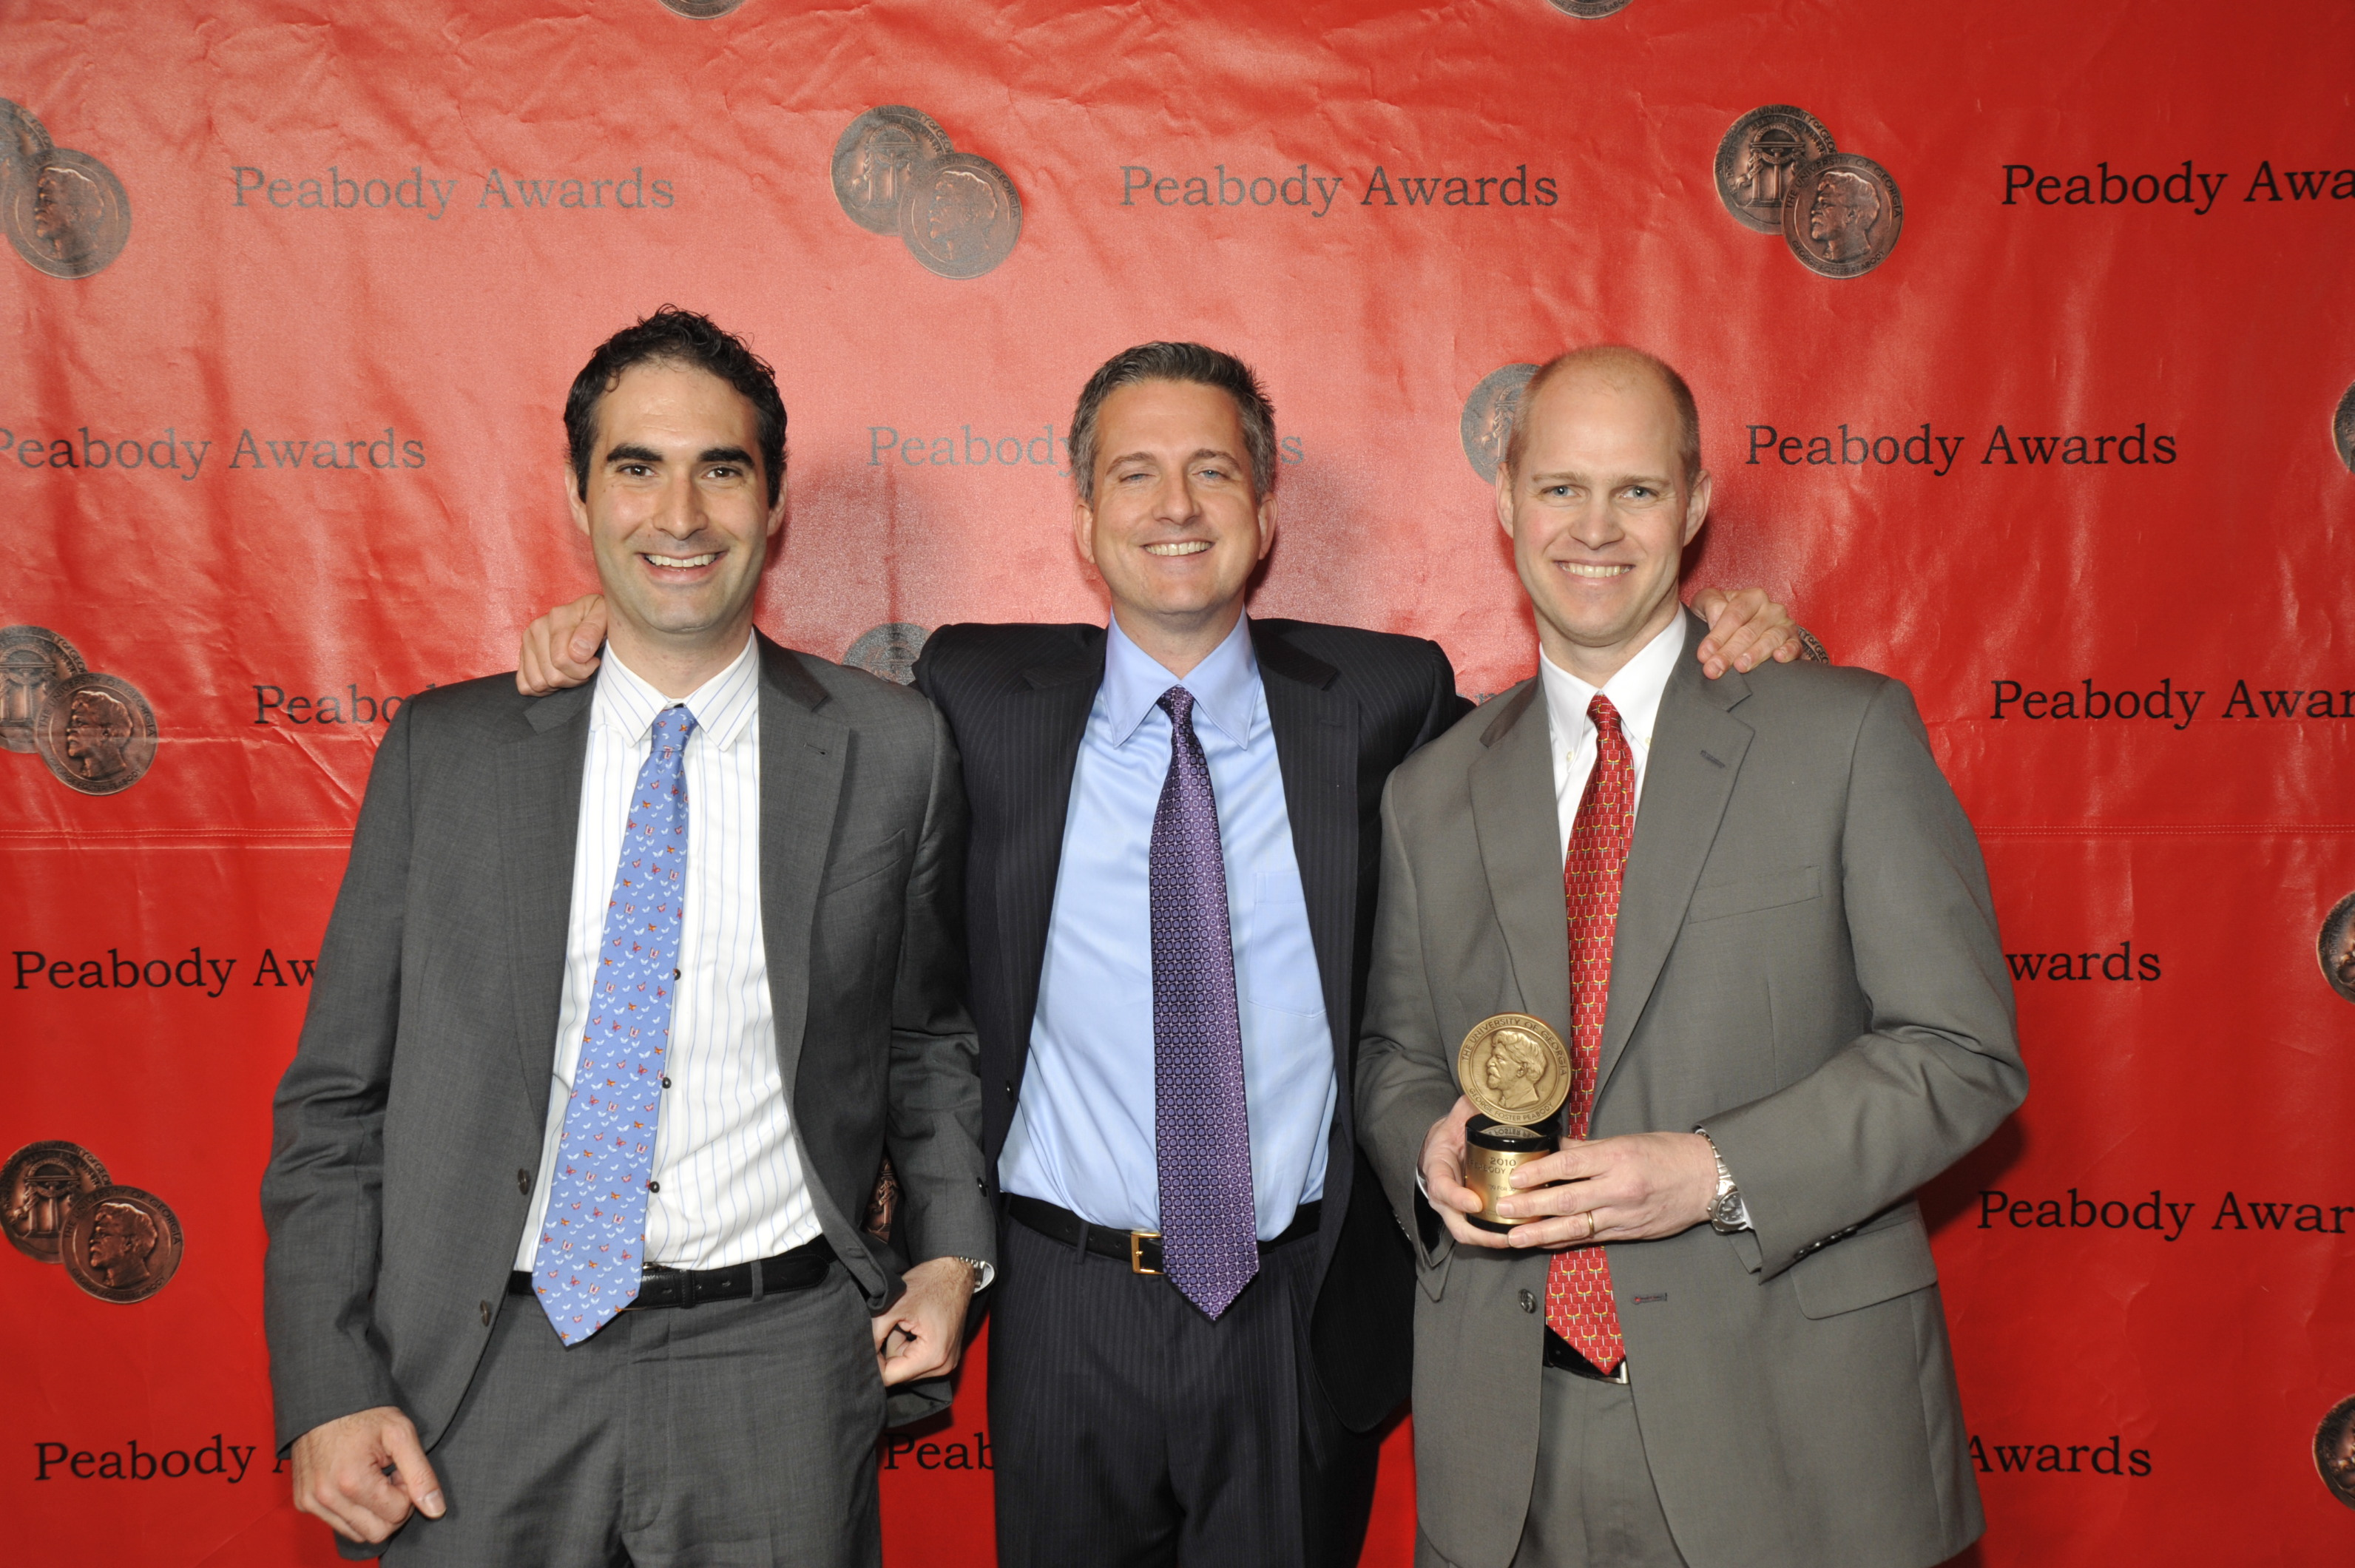 connor-schell-bill-simmons-and-john-dahl-at-the-70th-annual-pea